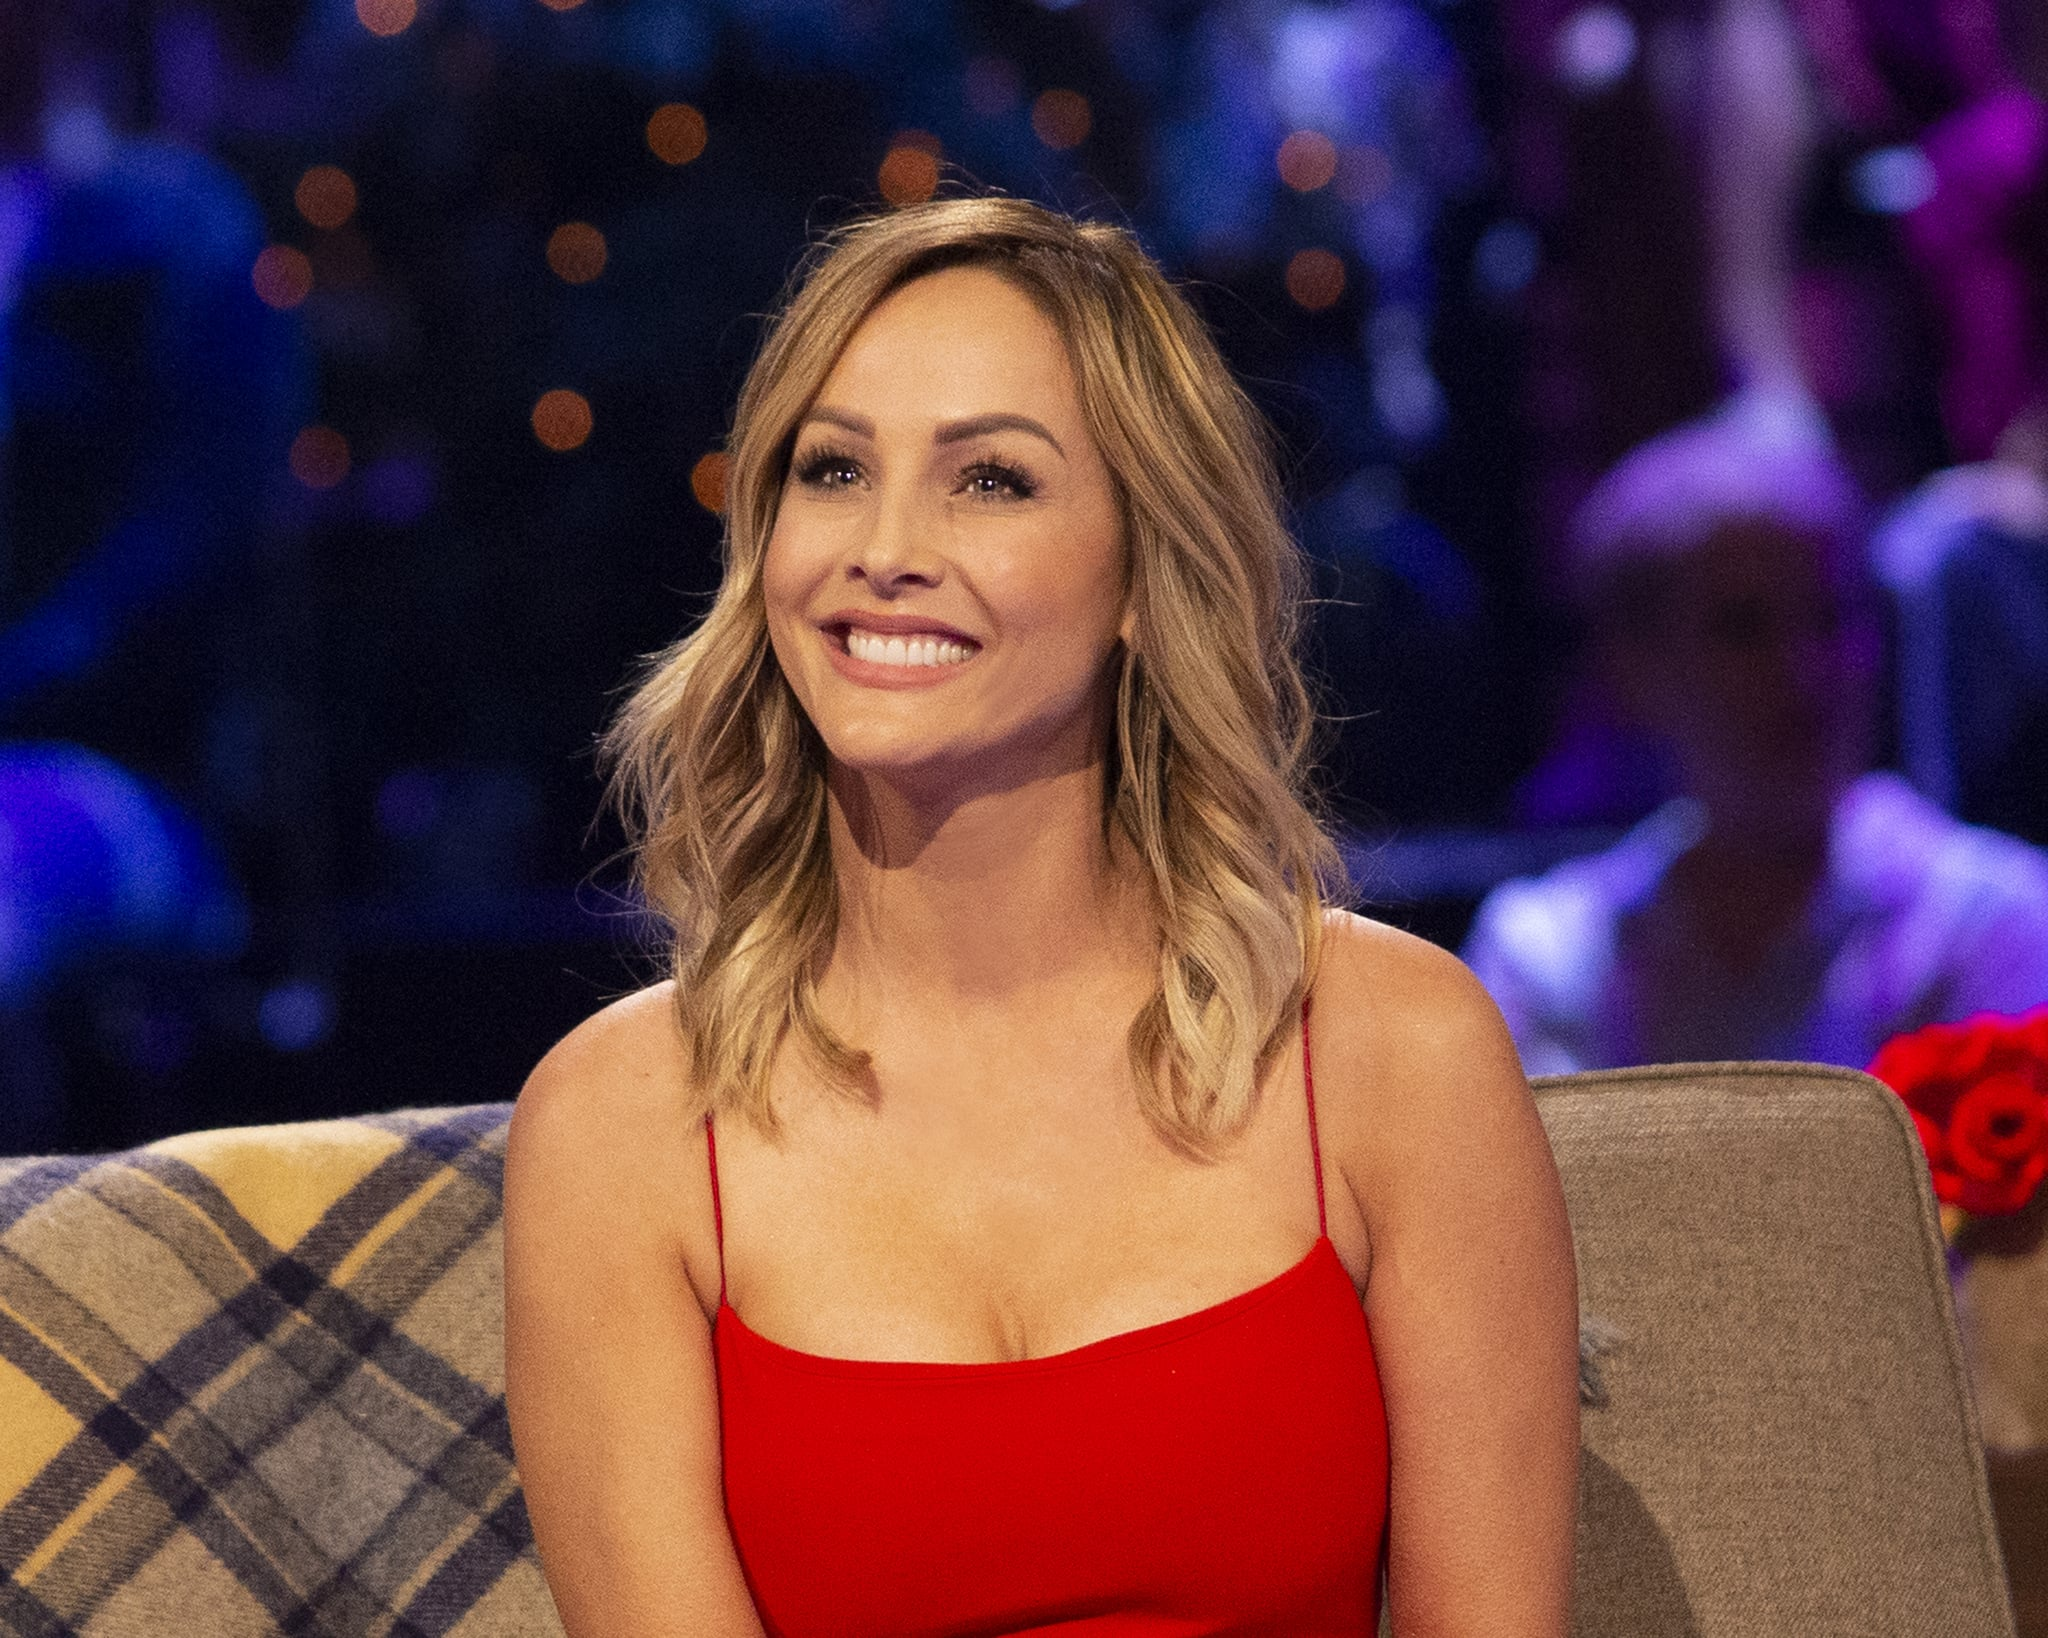 THE BACHELORETTE - The Bachelorette is set to return for its sizzling 16th season, Clare Crawley will head back to the Bachelor mansion as she embarks on a new journey to find true love, when The Bachelorette premieres MONDAY, MAY 18 (8:00-10:00 p.m. EDT), on ABC. (ABC/Paul Hebert)CLARE CRAWLEY